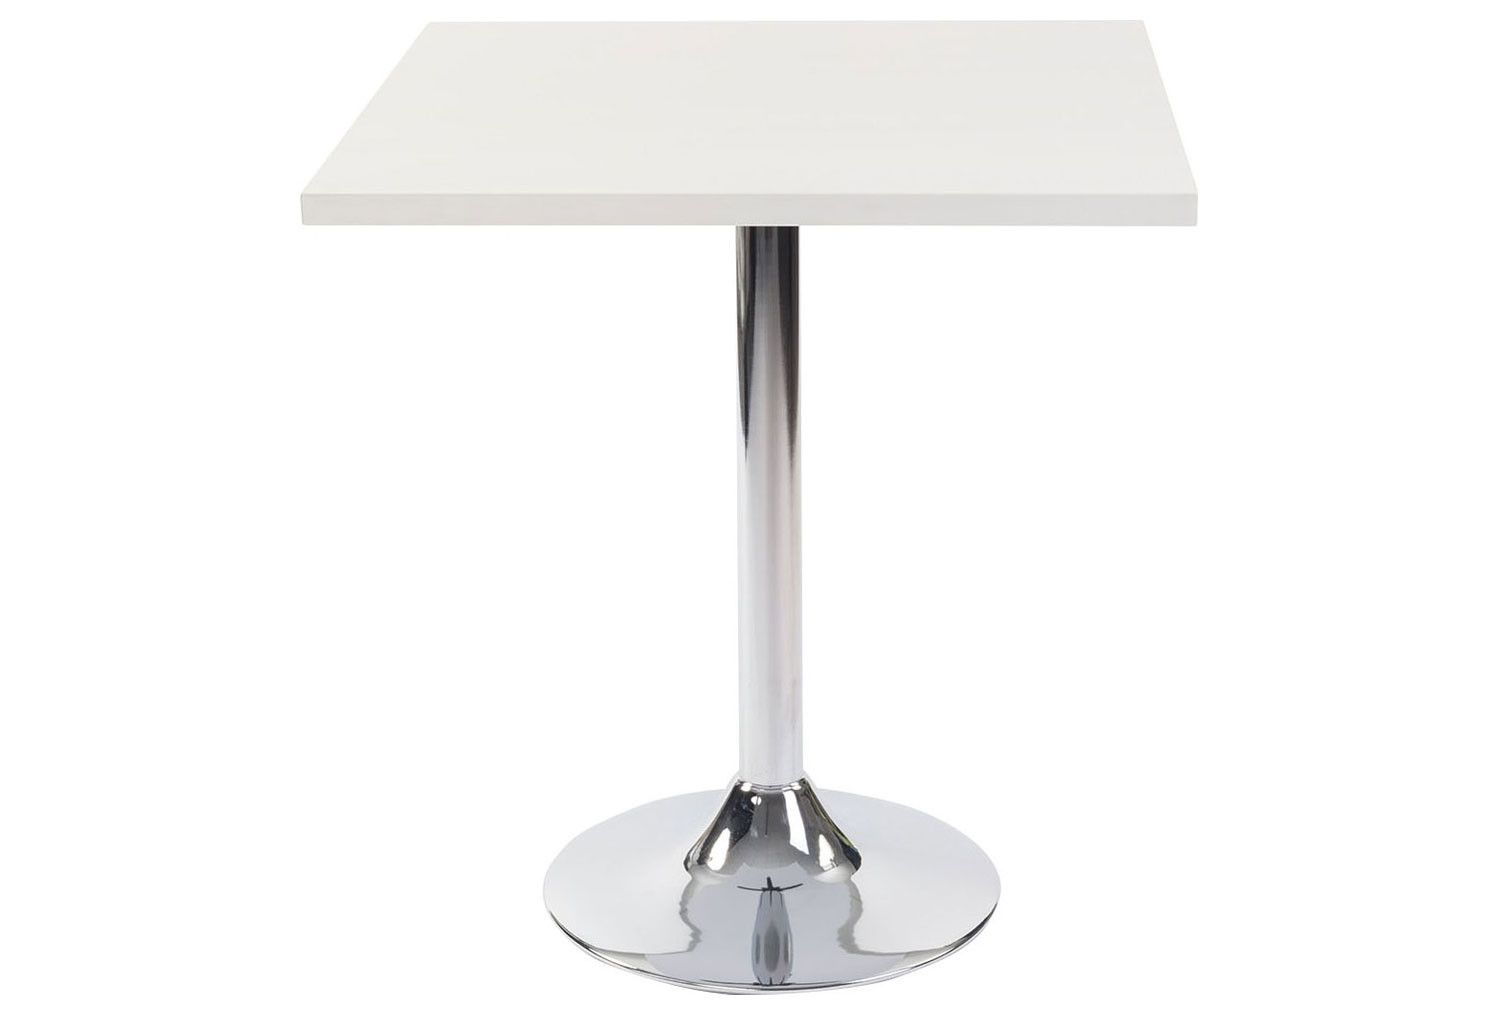 Rosemead Square Dining Table